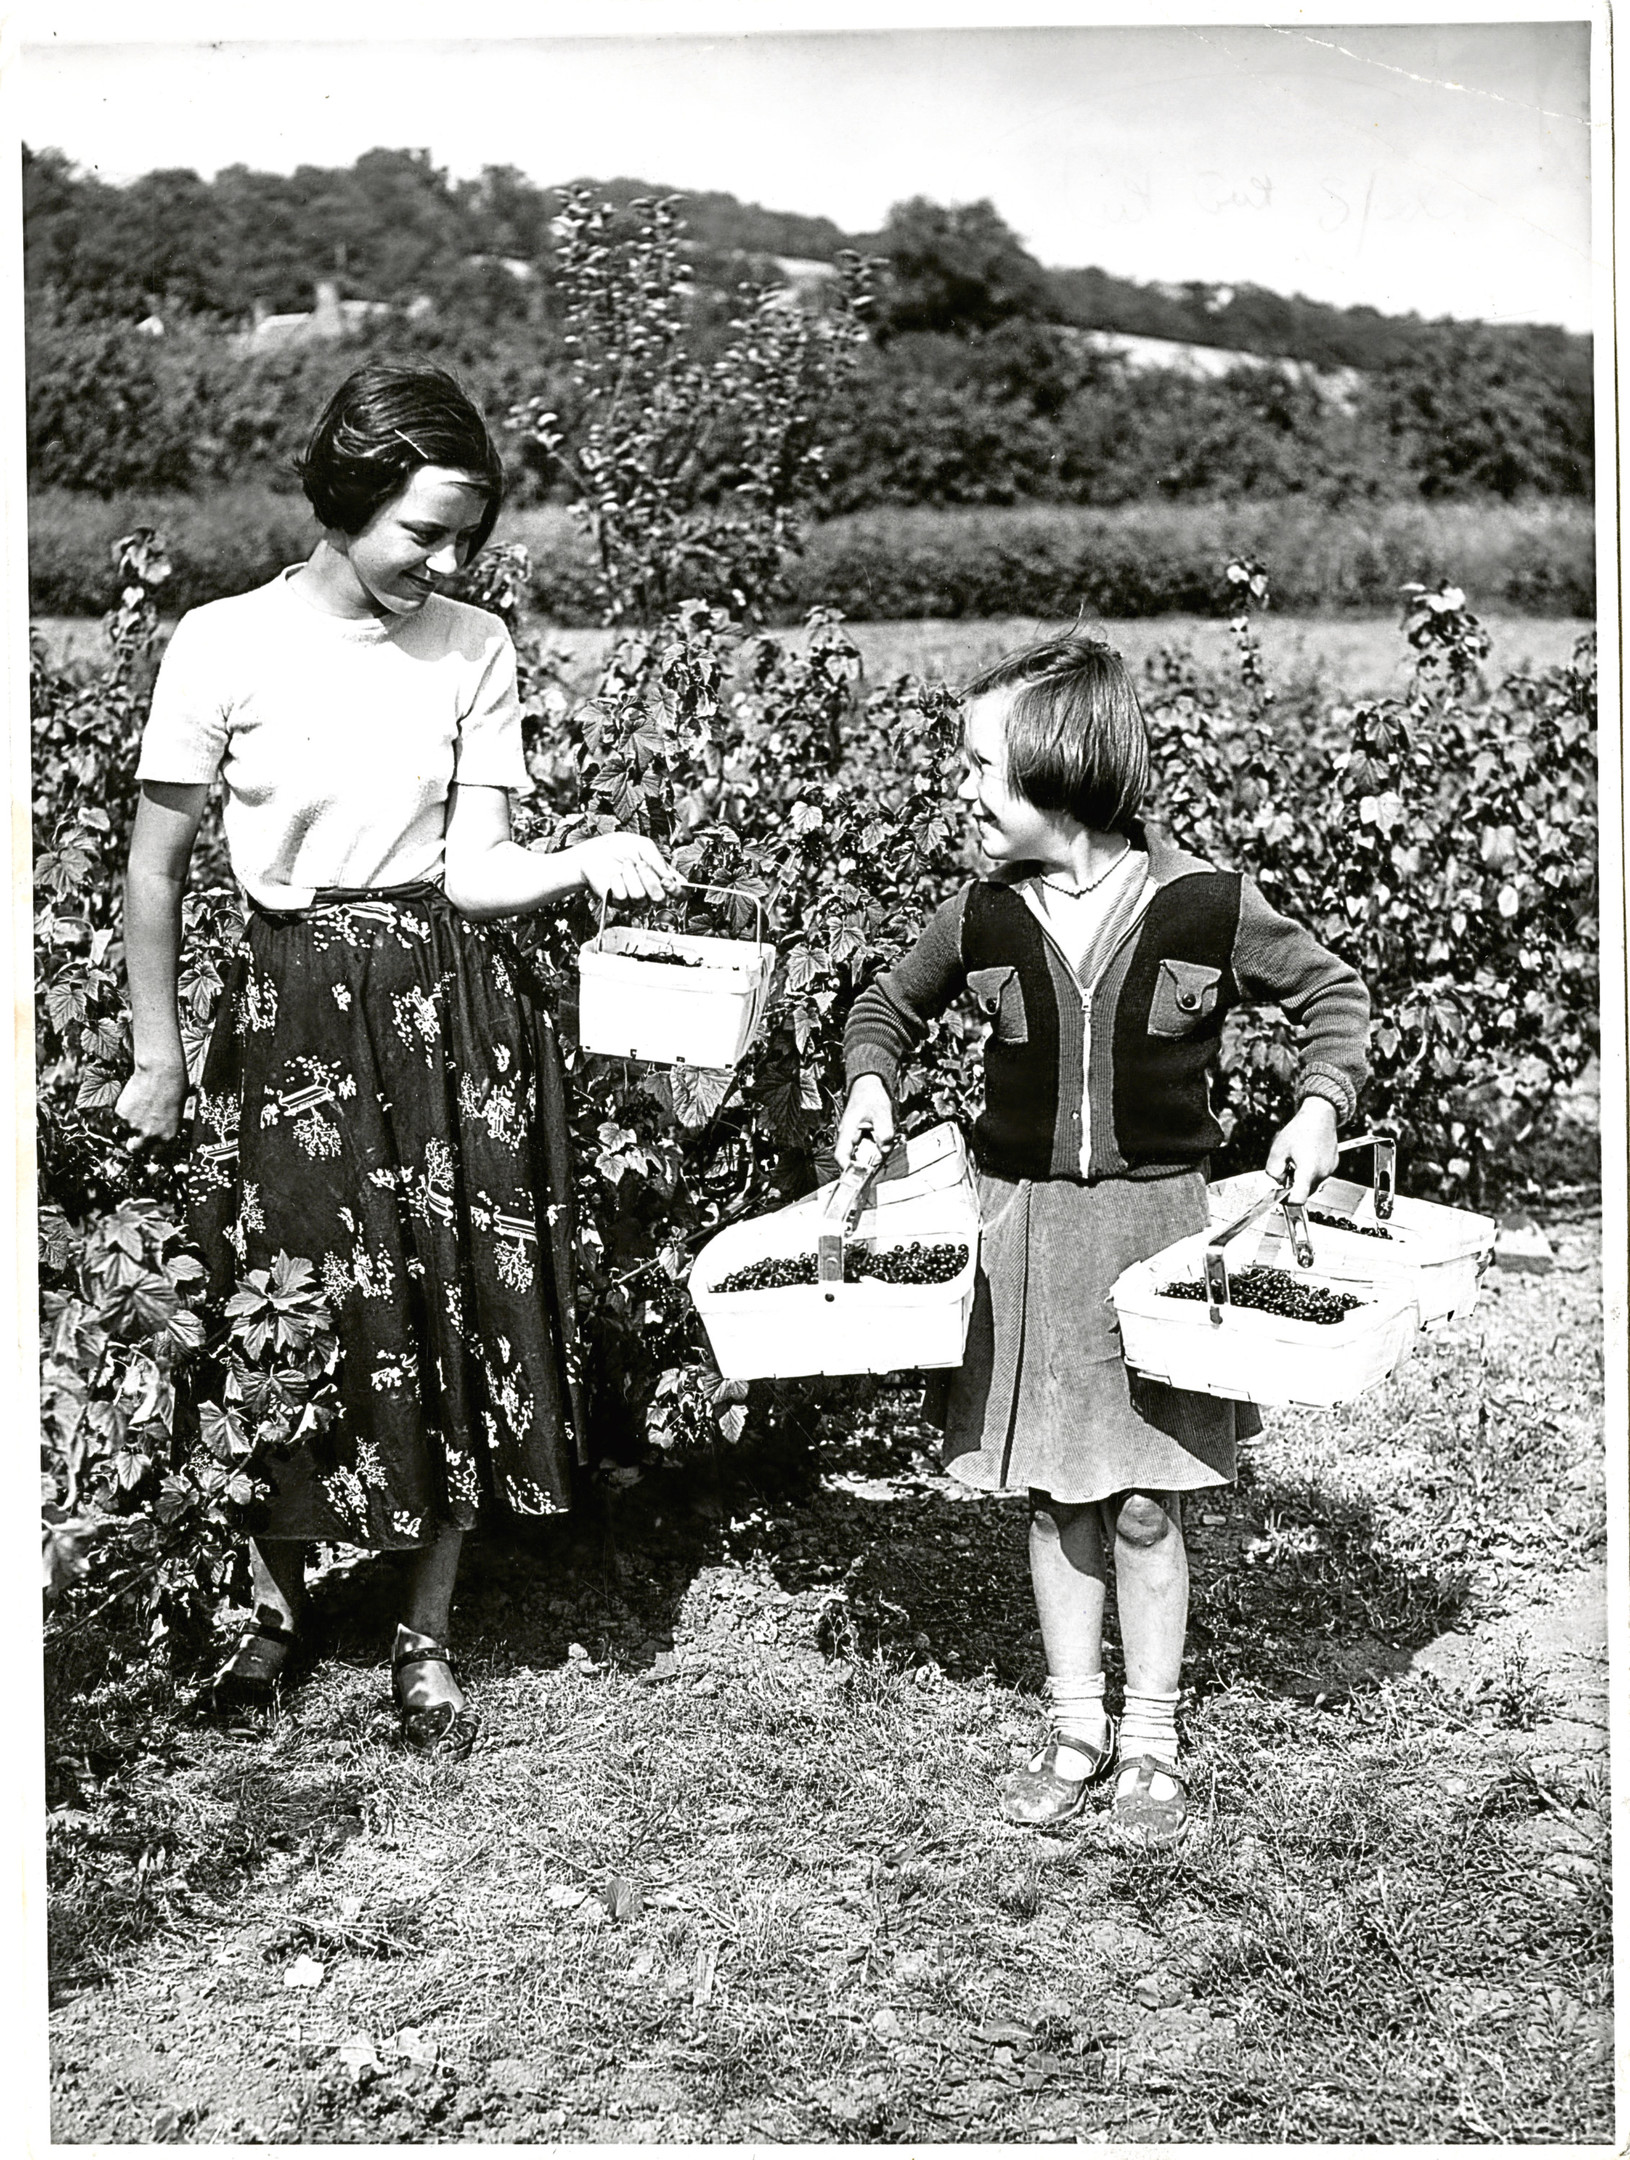 Back in the Day - Saturday 5 May 18 Inchture Berry Pickers. Photograph showing two young girls picking berries at a farm in Inchture. 4 August 1955. E28 1955-08-04 Inchture Berry Pickers (C)DCT Dundonian. Used in Courier 5 August 1955.